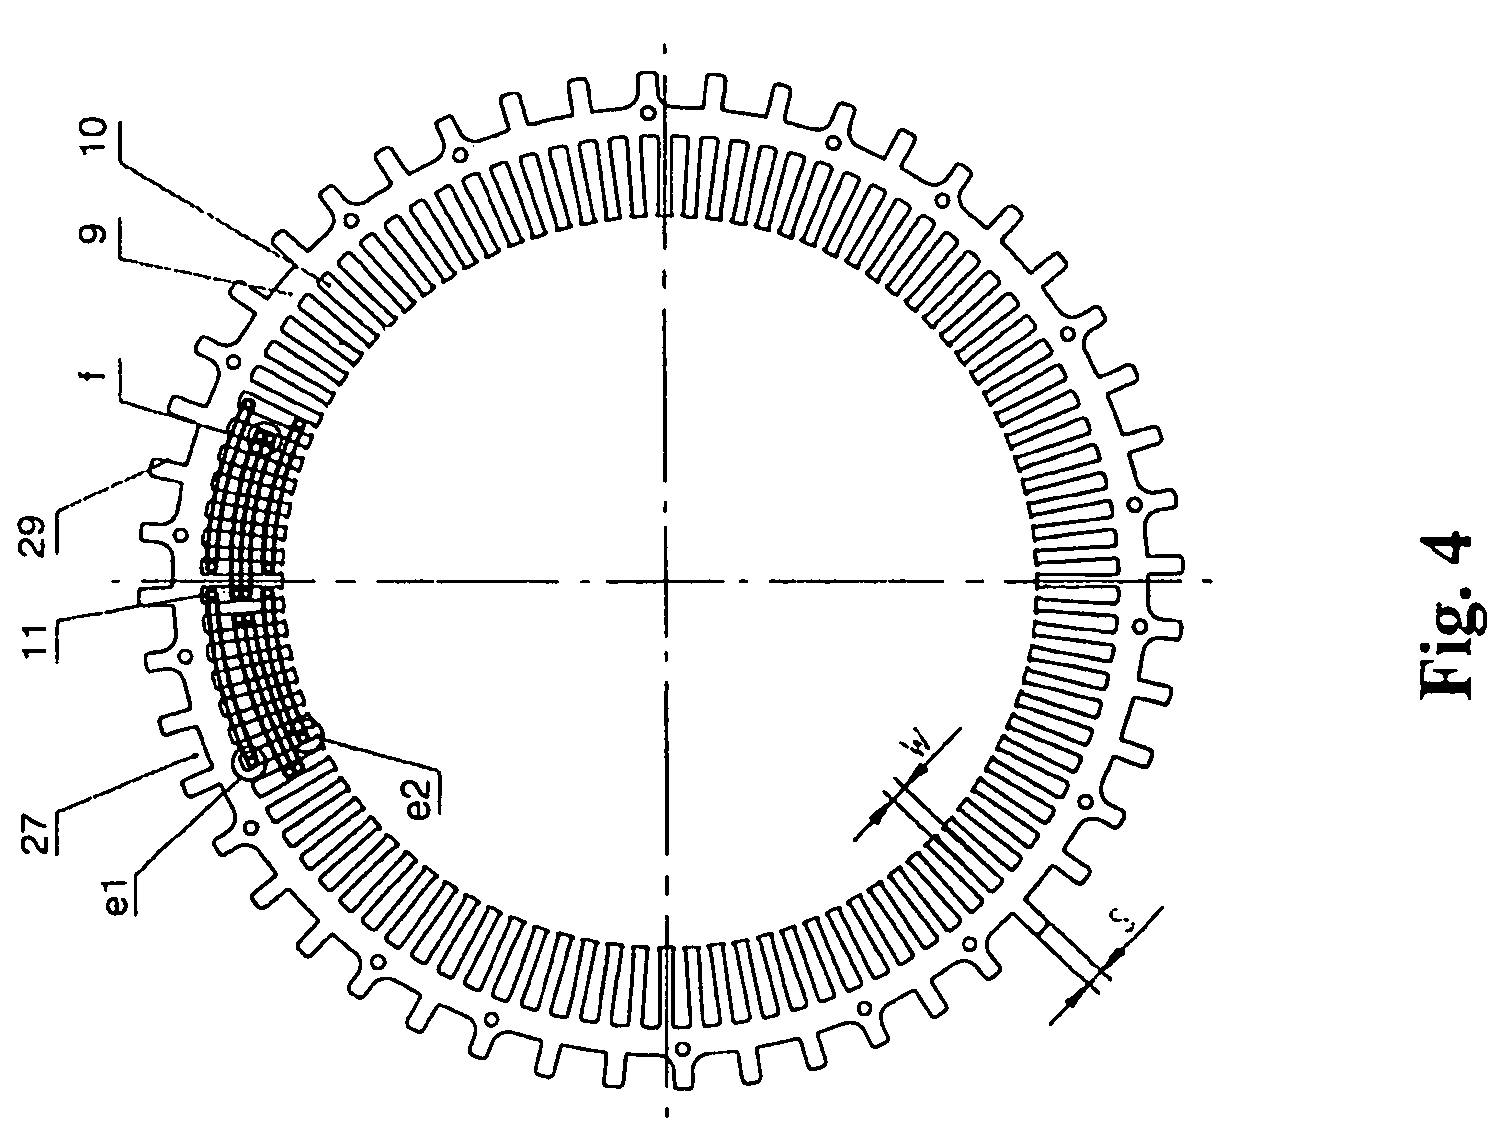 patent us7915783 - brushless alternator with claw pole rotor